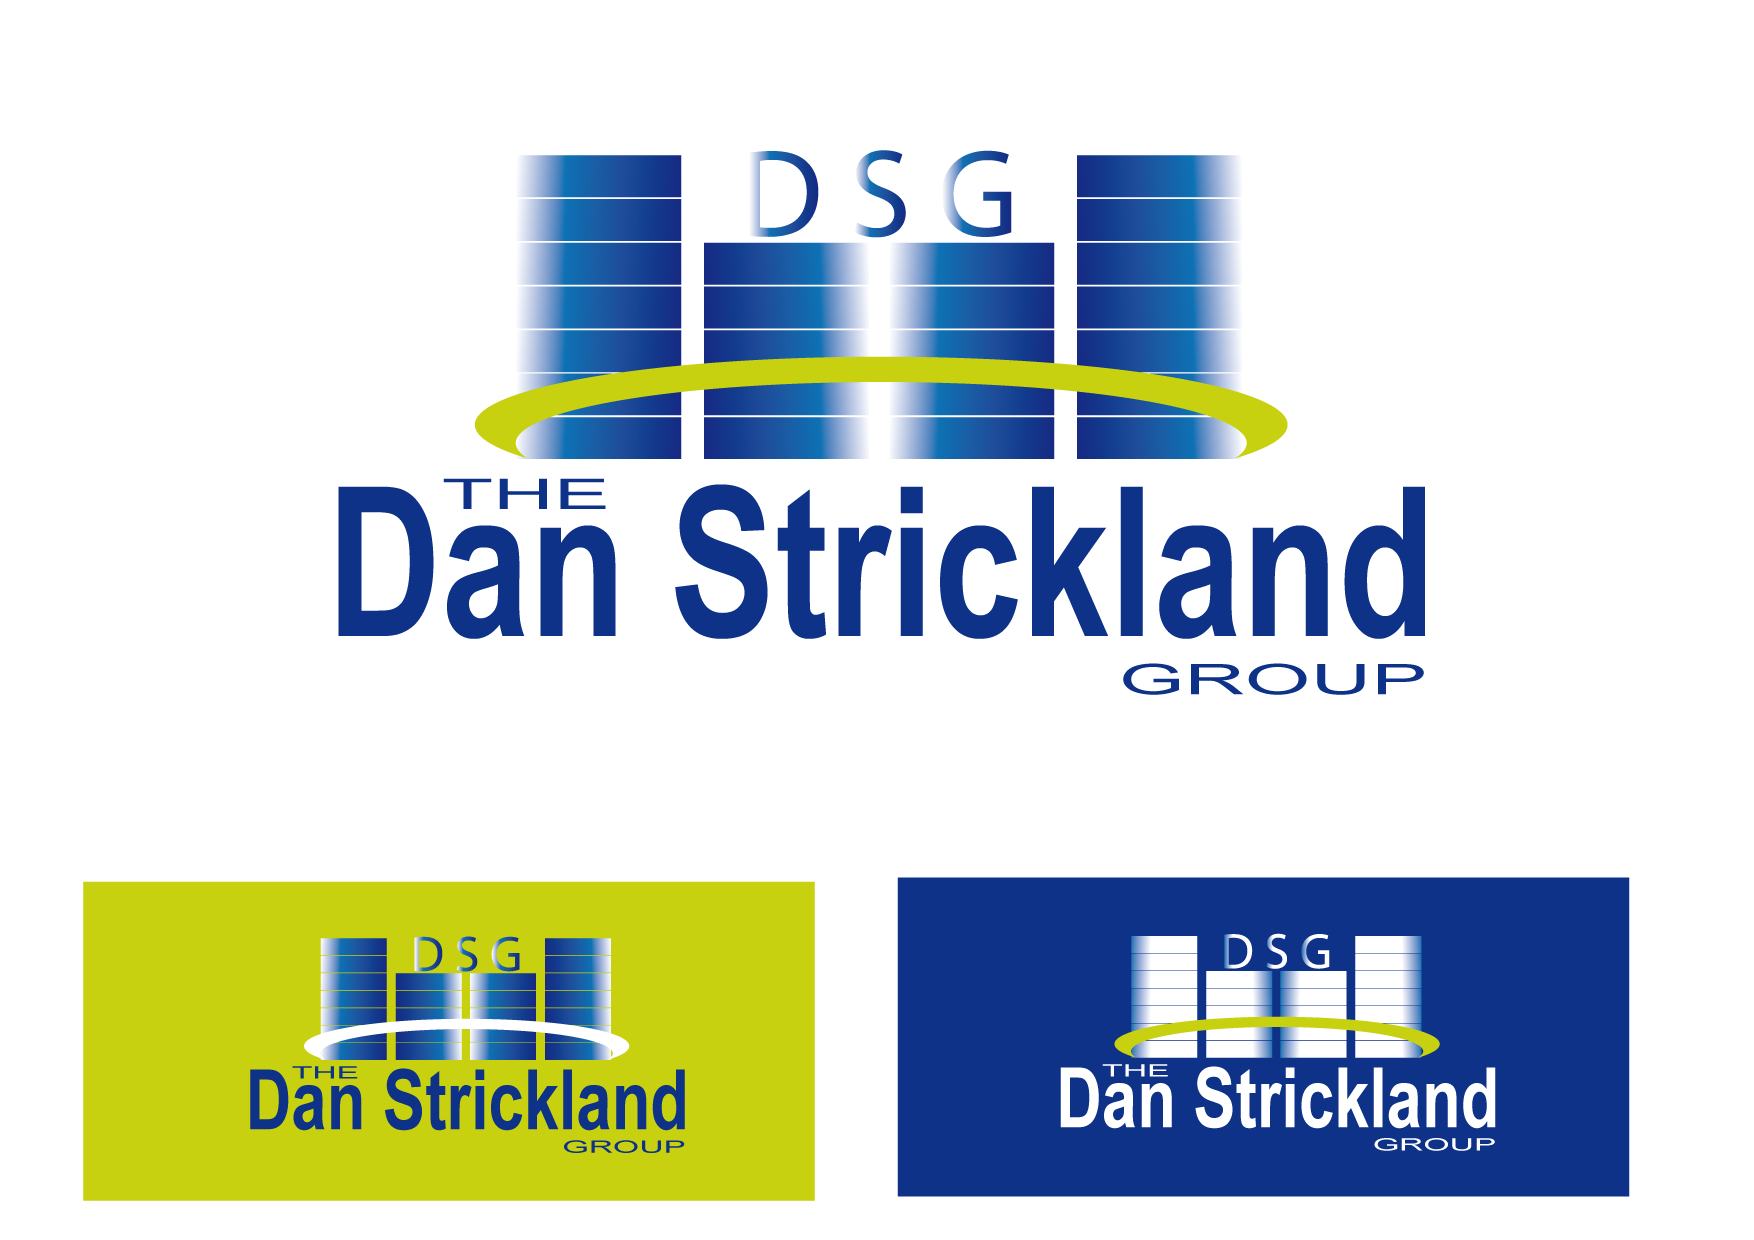 Logo Design by Kenan çete - Entry No. 355 in the Logo Design Contest Creative Logo Design for The Dan Strickland Group.